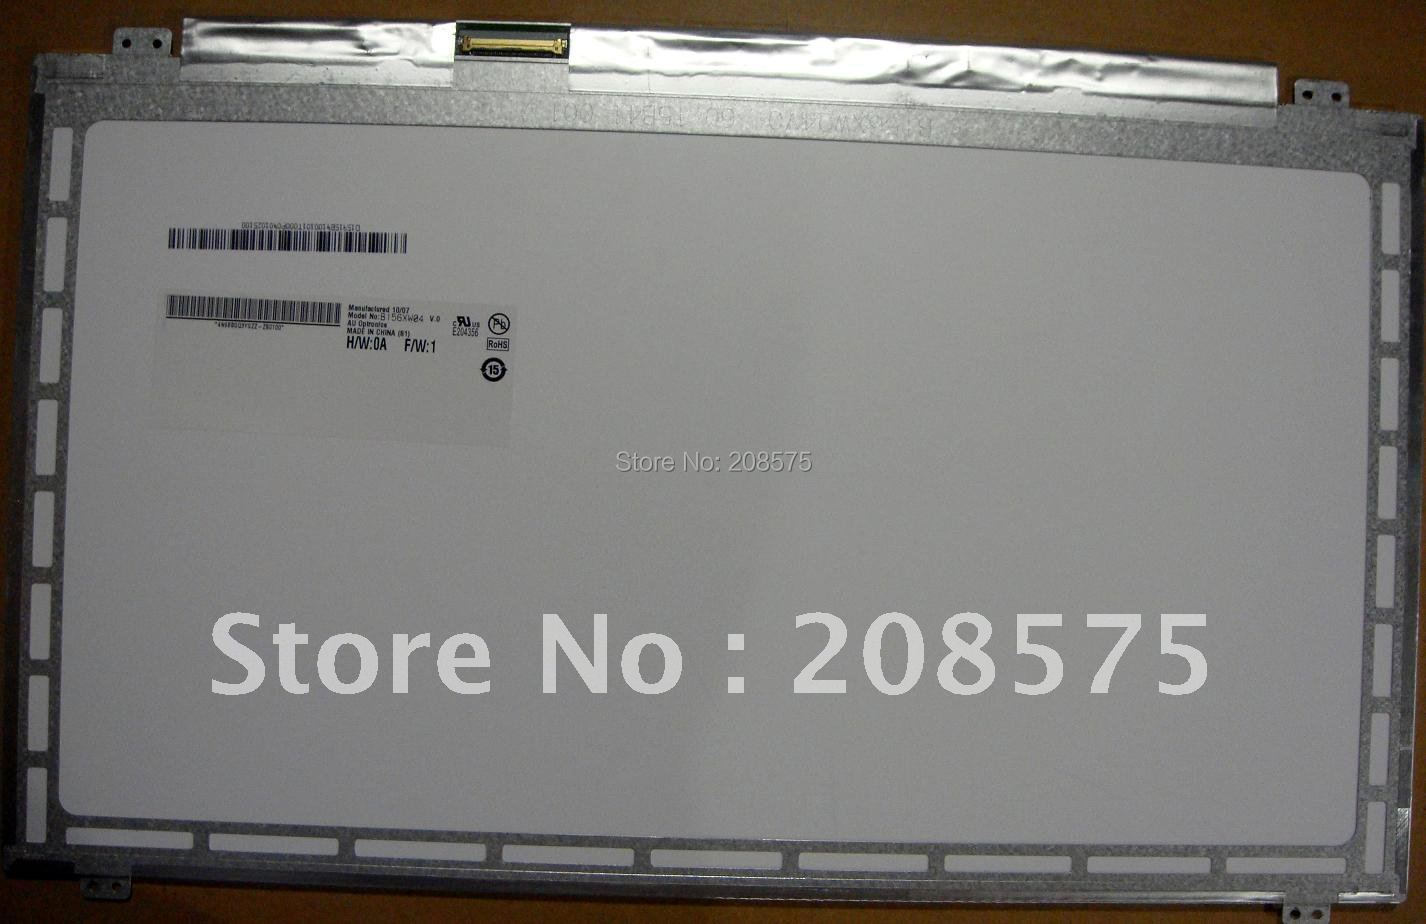 Free shipping B156XW04 V.0 V.6 V.5 LP156WH3 B156XW03 N156BGE-L41 N156B6-L0D LTN156AT20 LTN156AT30 NEW LED Display Laptop Screen(China (Mainland))